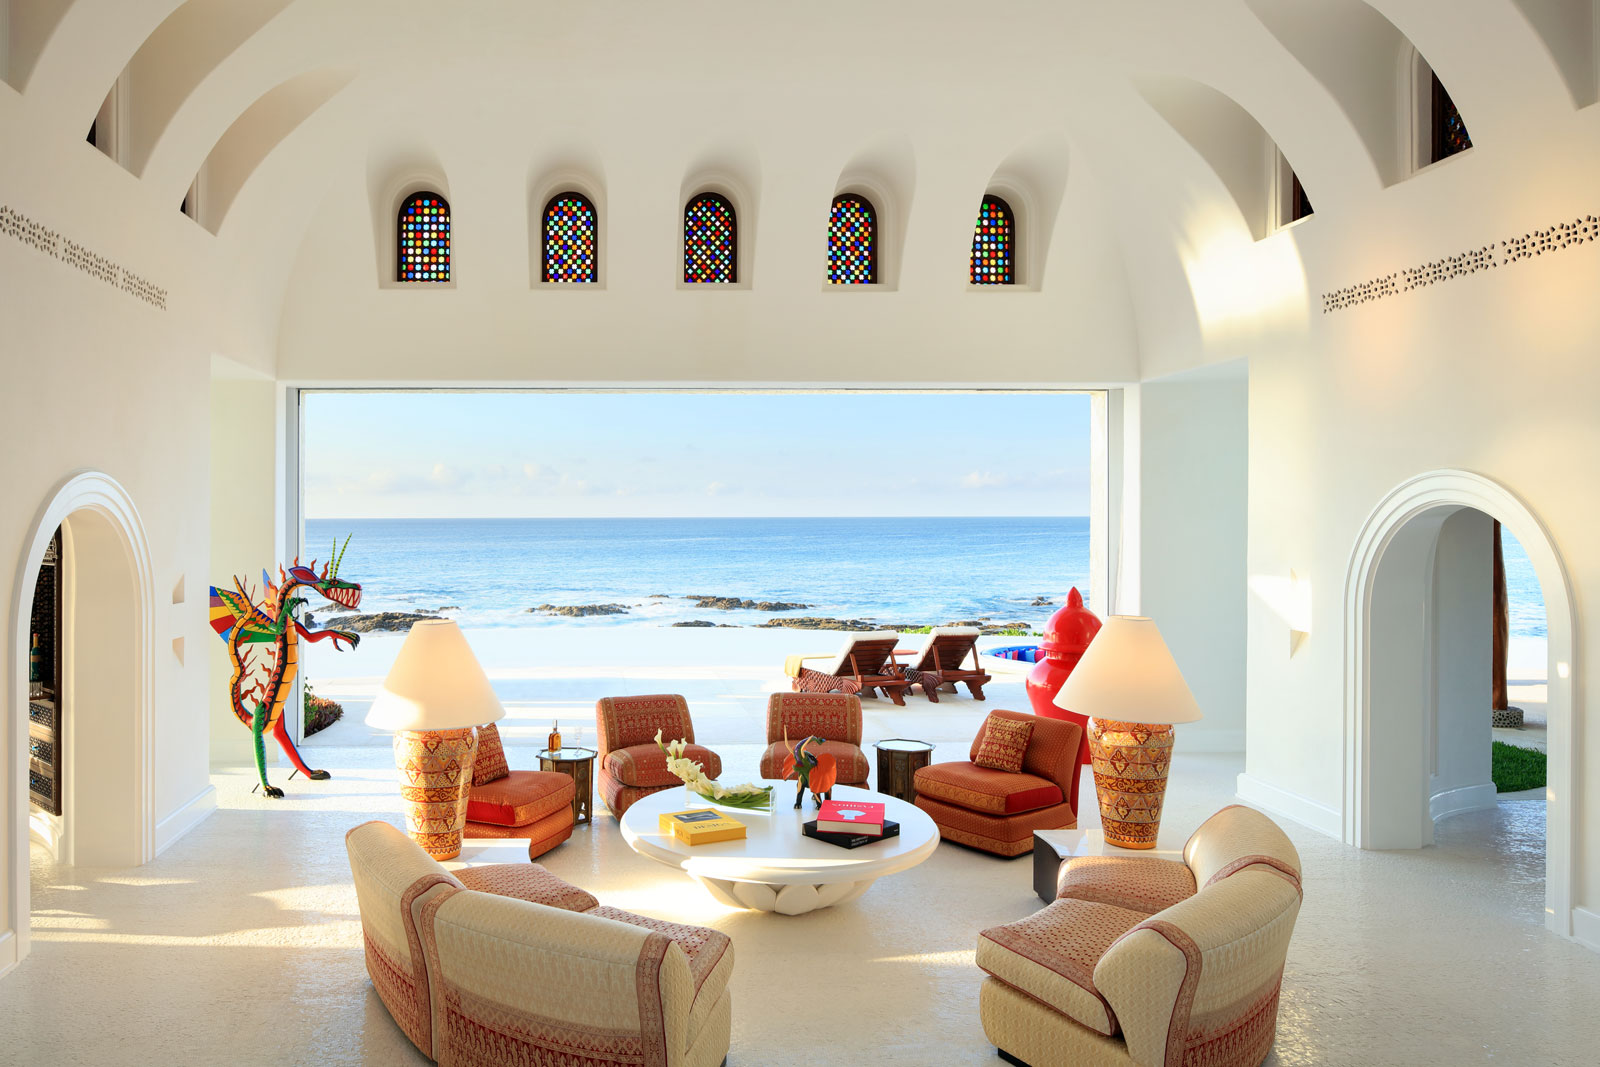 TY Warner Mansion - Probably The Most Luxurious Holiday Home in Mexico 6